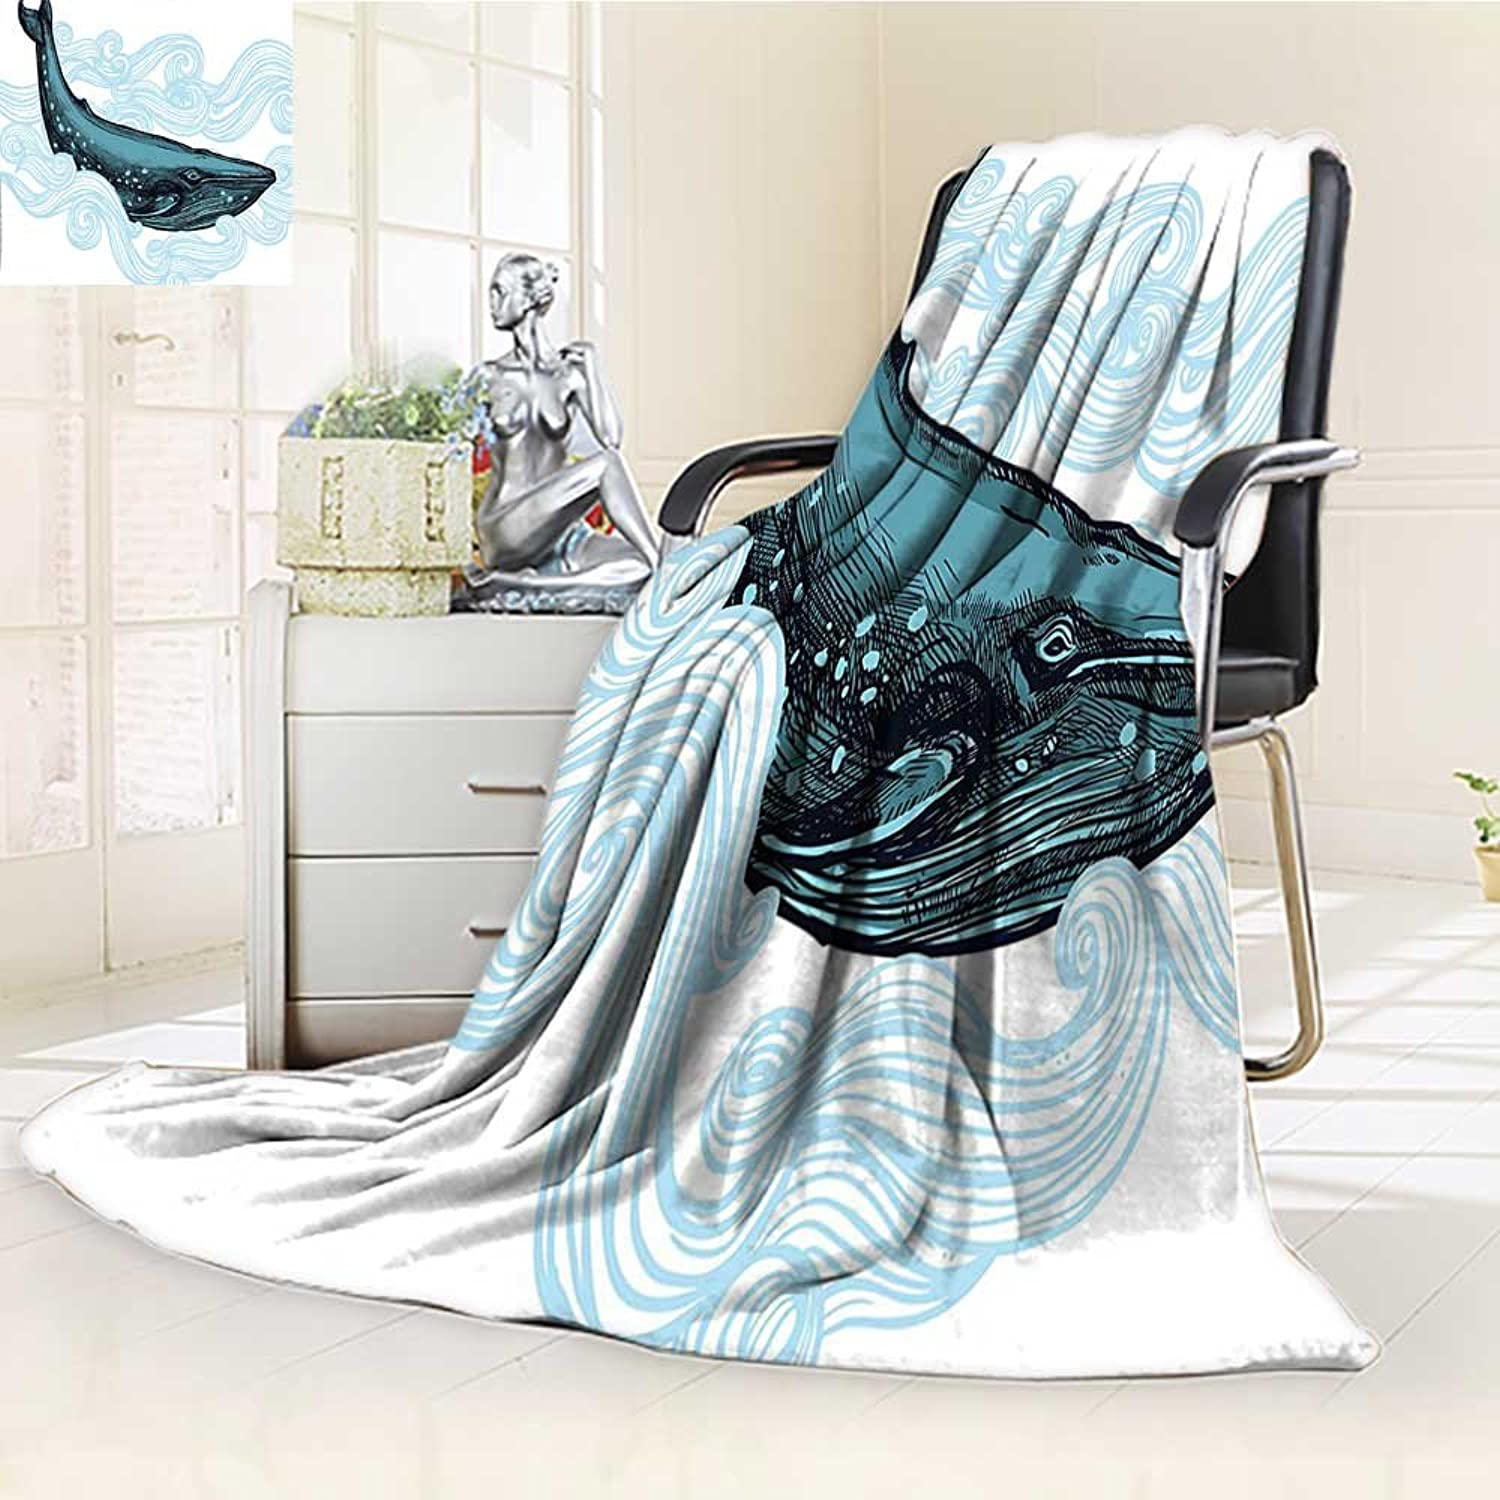 YOYIHOME Digital Printing Duplex Printed Blanket Whale Big Happy Whale with Ornamental Striped Waves with Motto Artwork White Dark bluee and bluee Summer Quilt Comforter  W47 x H59